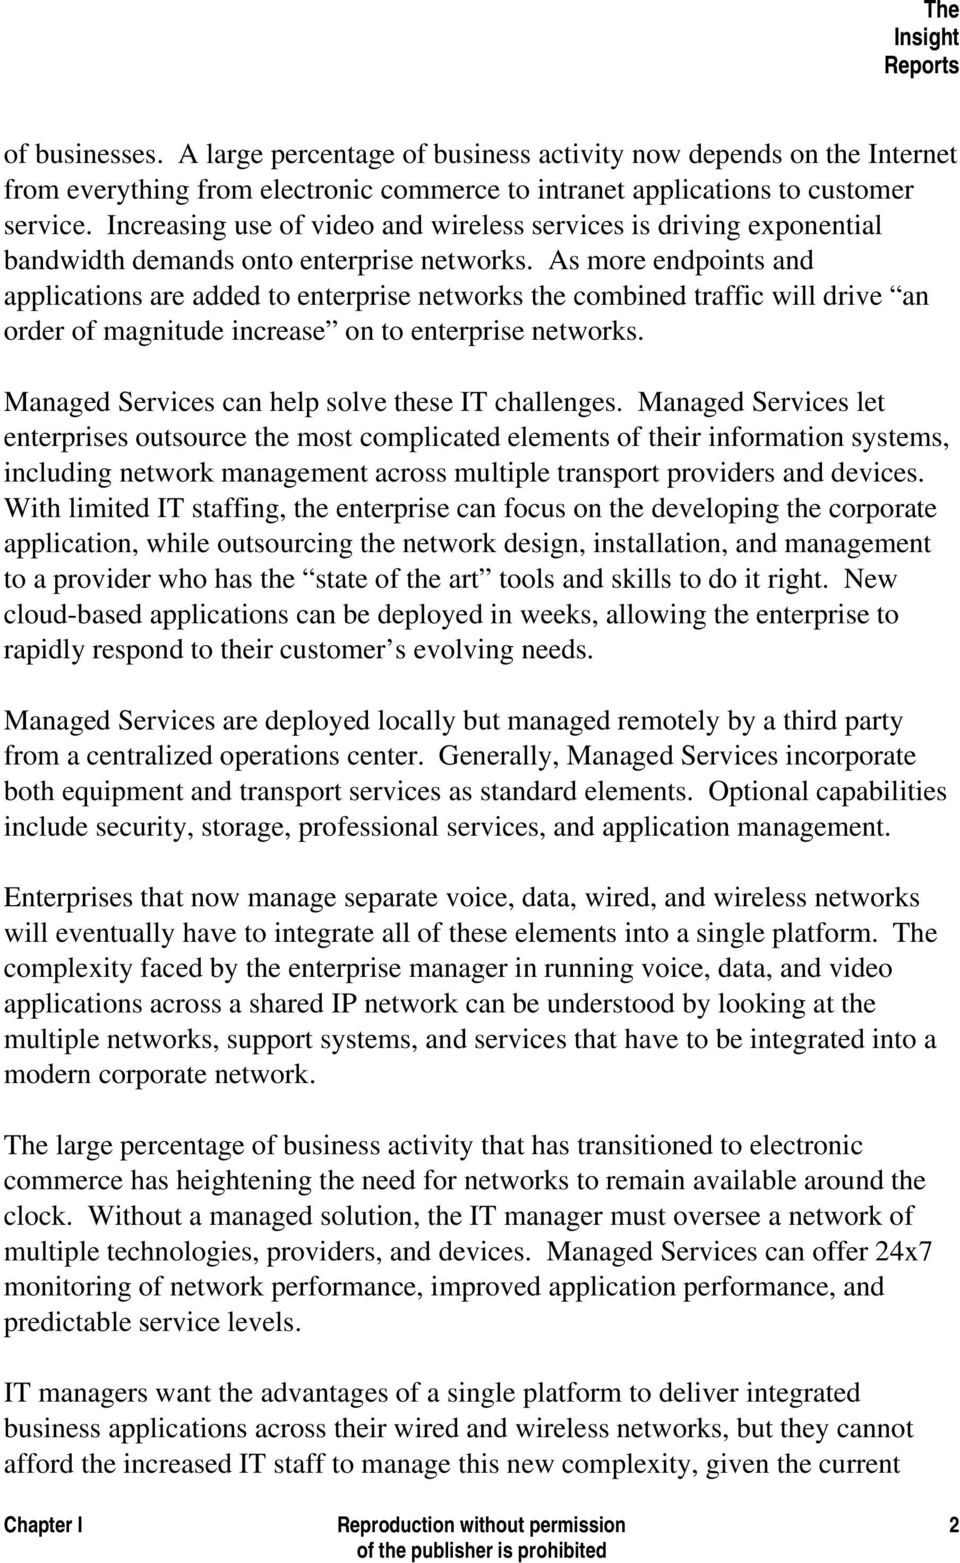 As more endpoints and applications are added to enterprise networks the combined traffic will drive an order of magnitude increase on to enterprise networks.